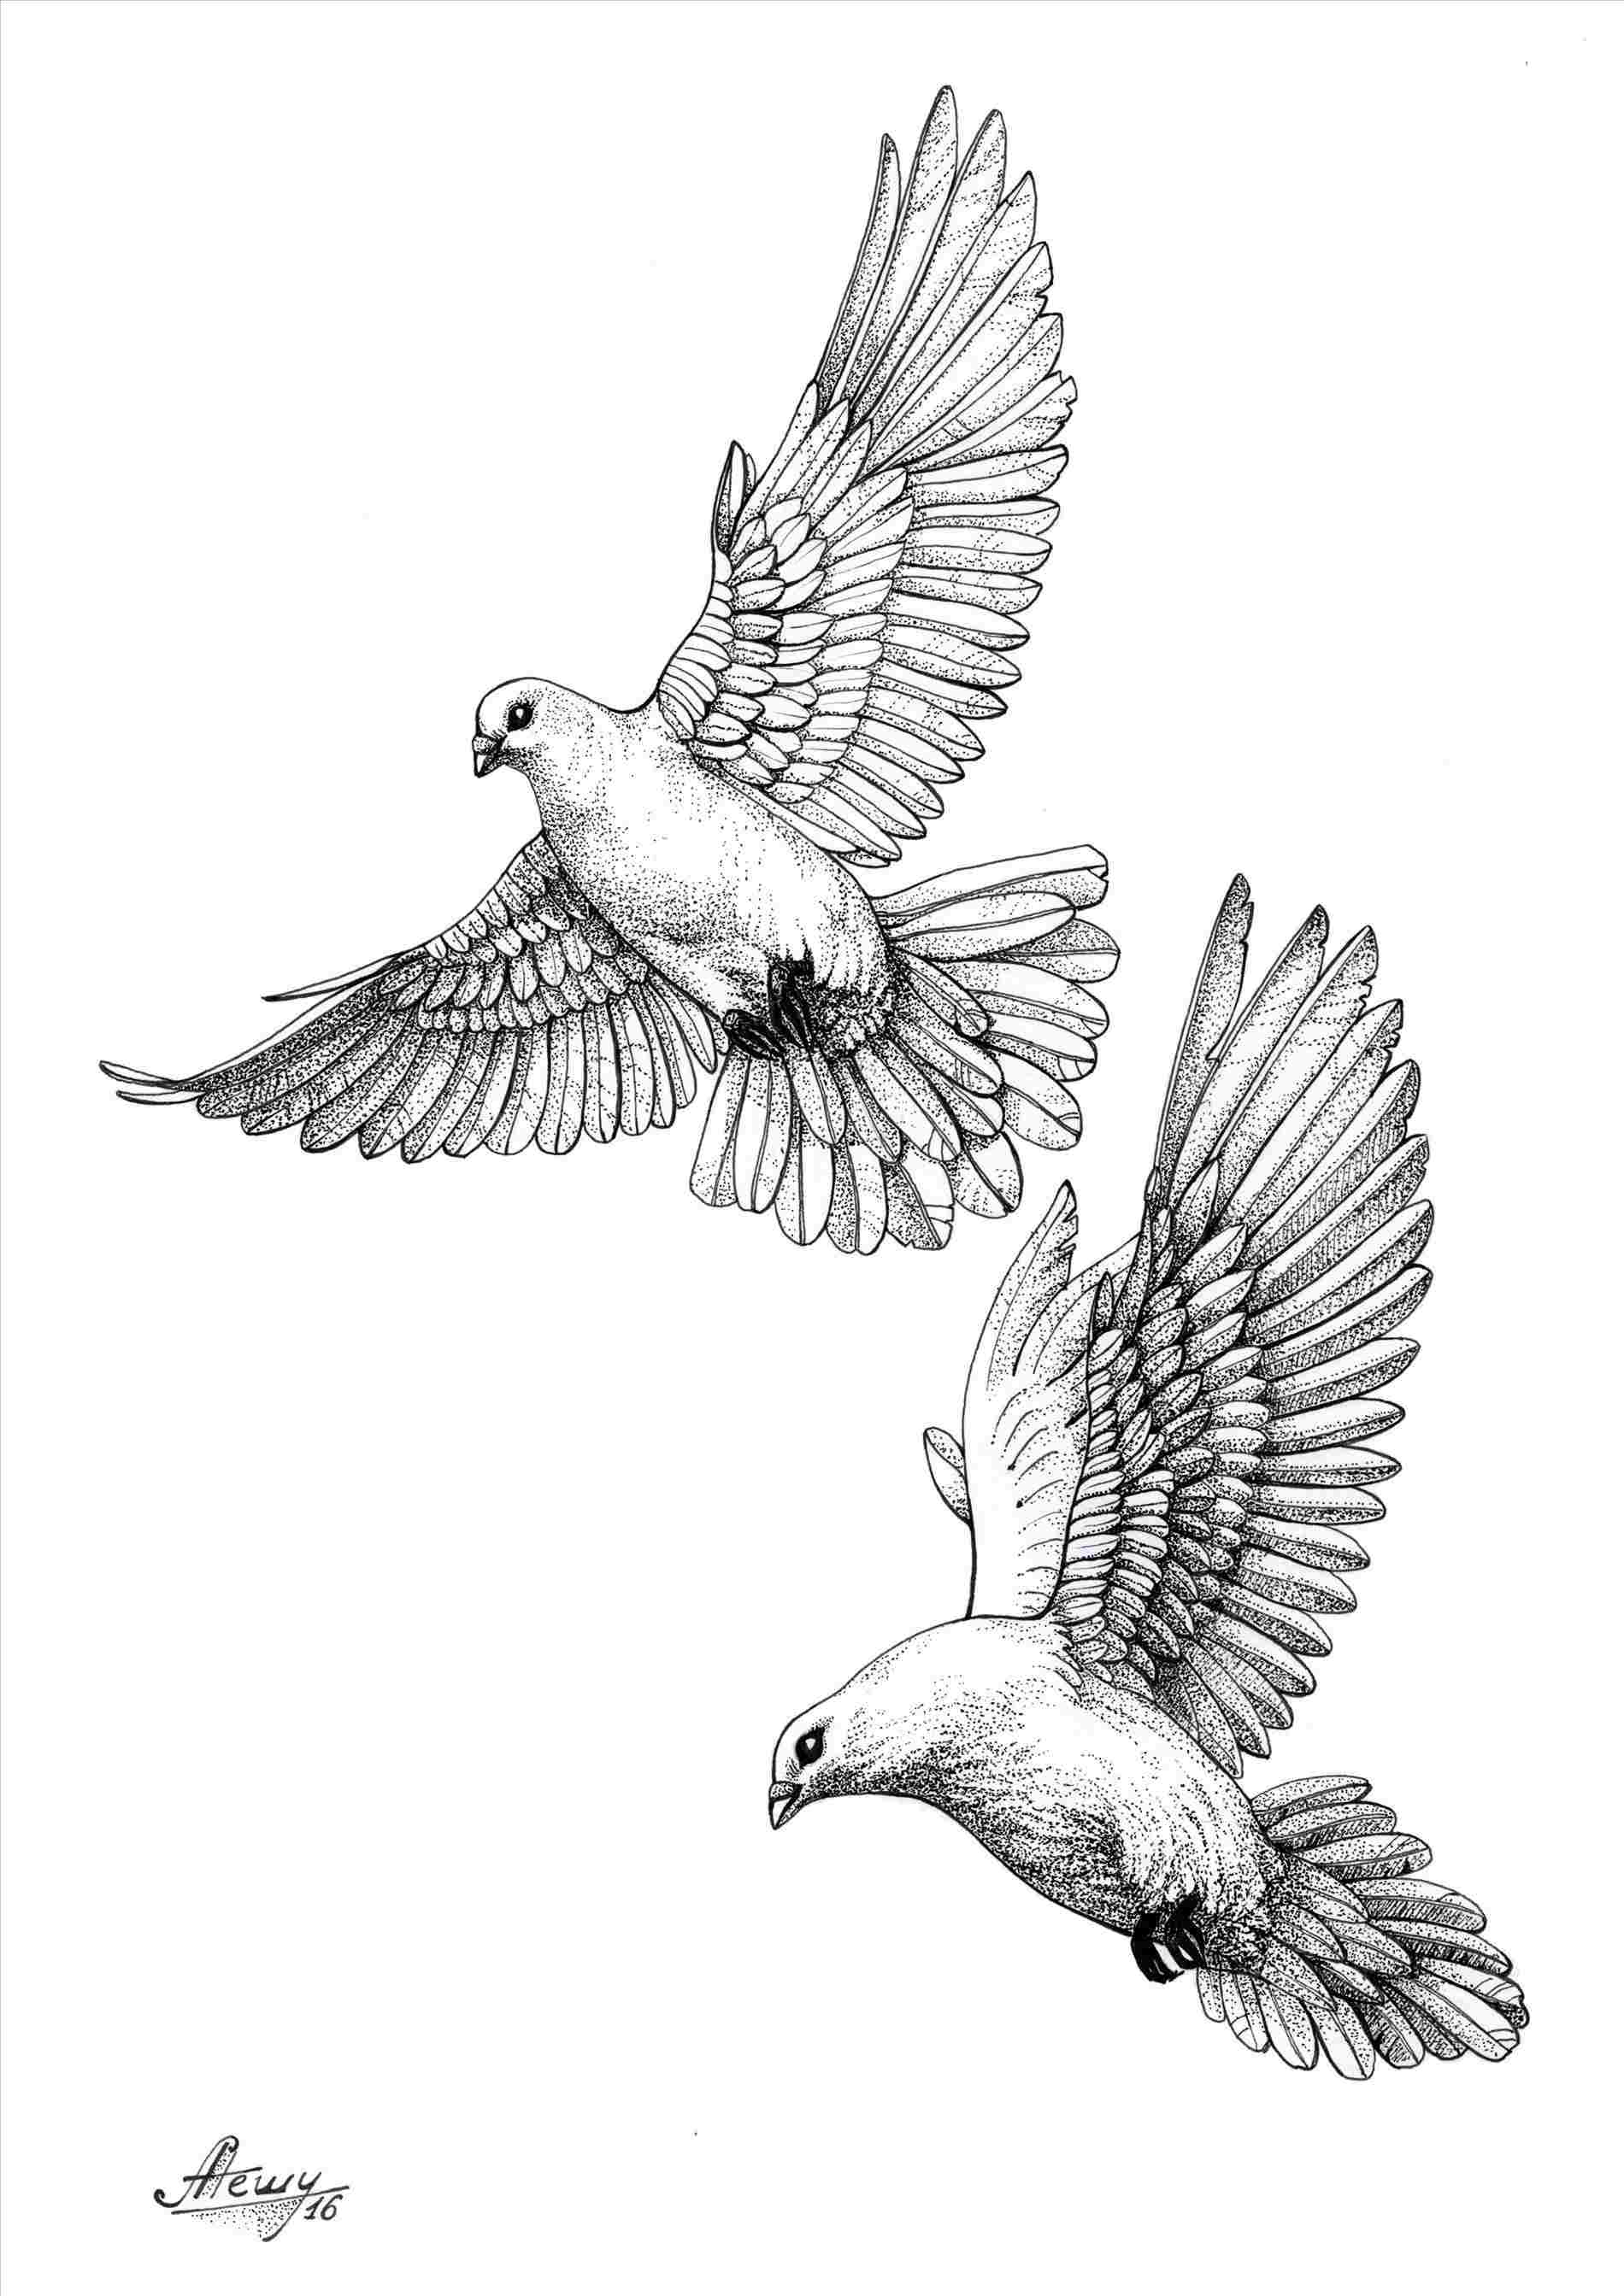 dove drawing flying books drawing free download on clipartmag dove drawing